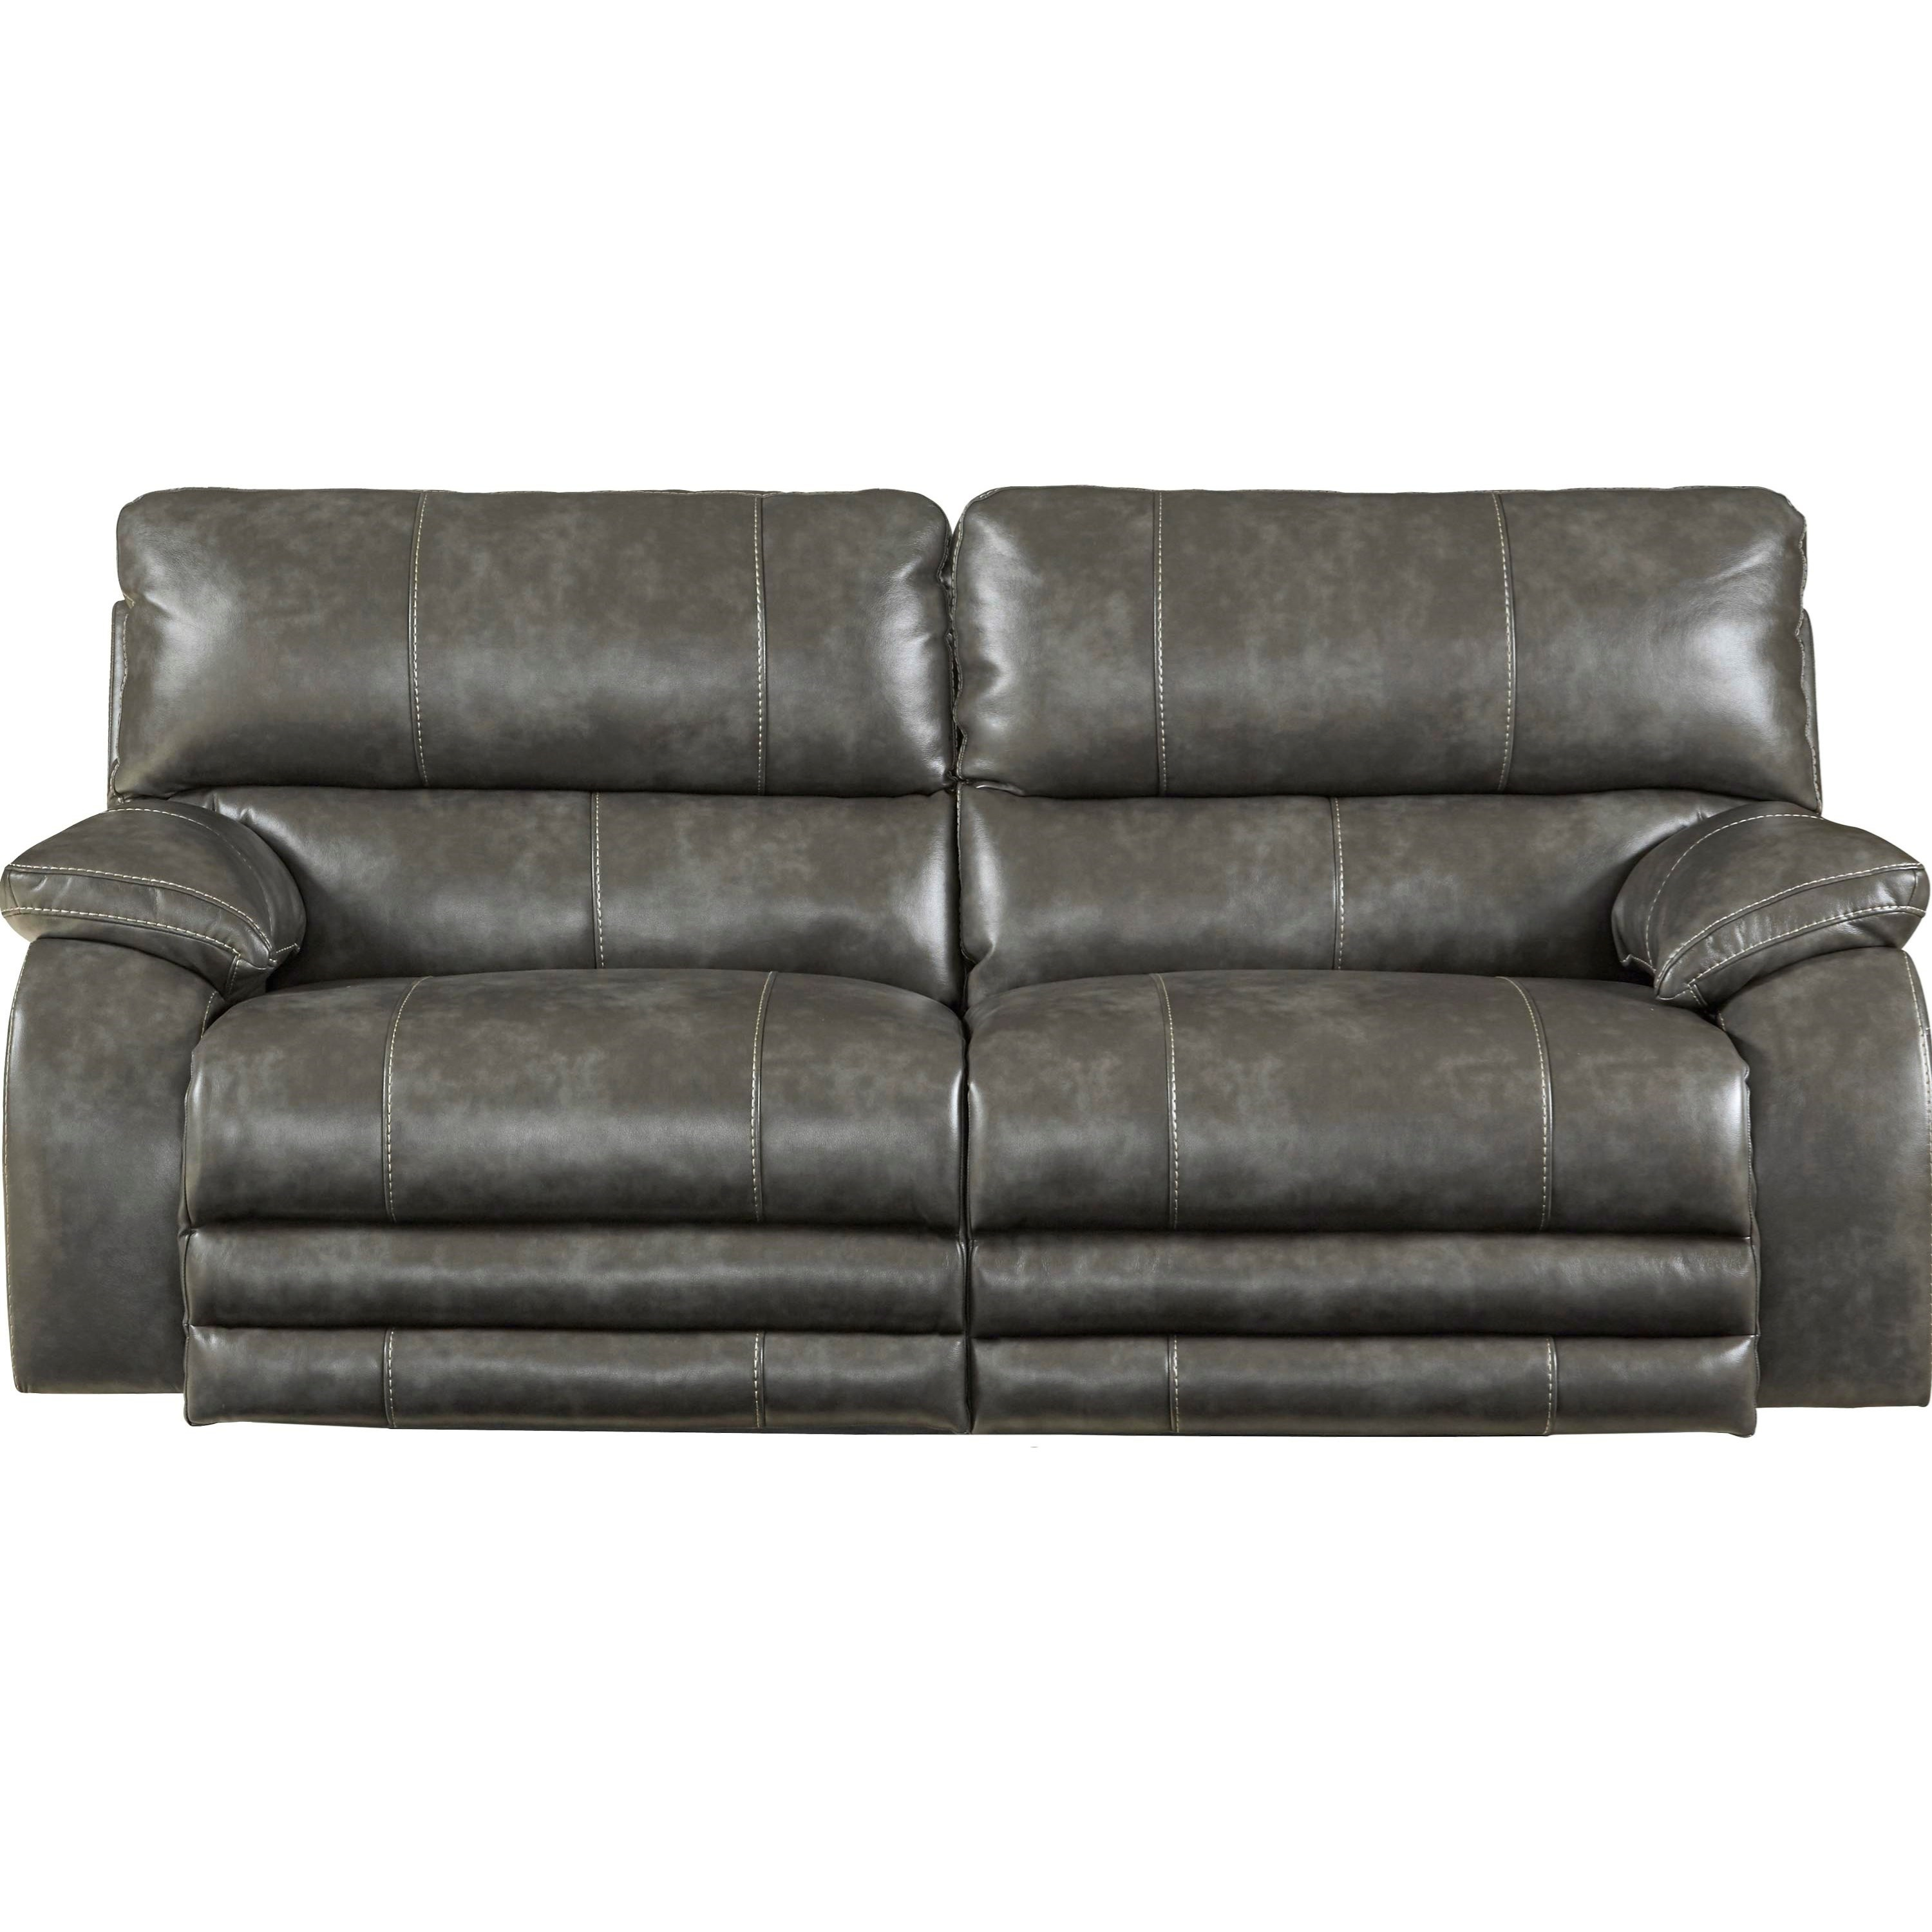 catnapper sofa center durant square reclining with power headrest and lay flat by